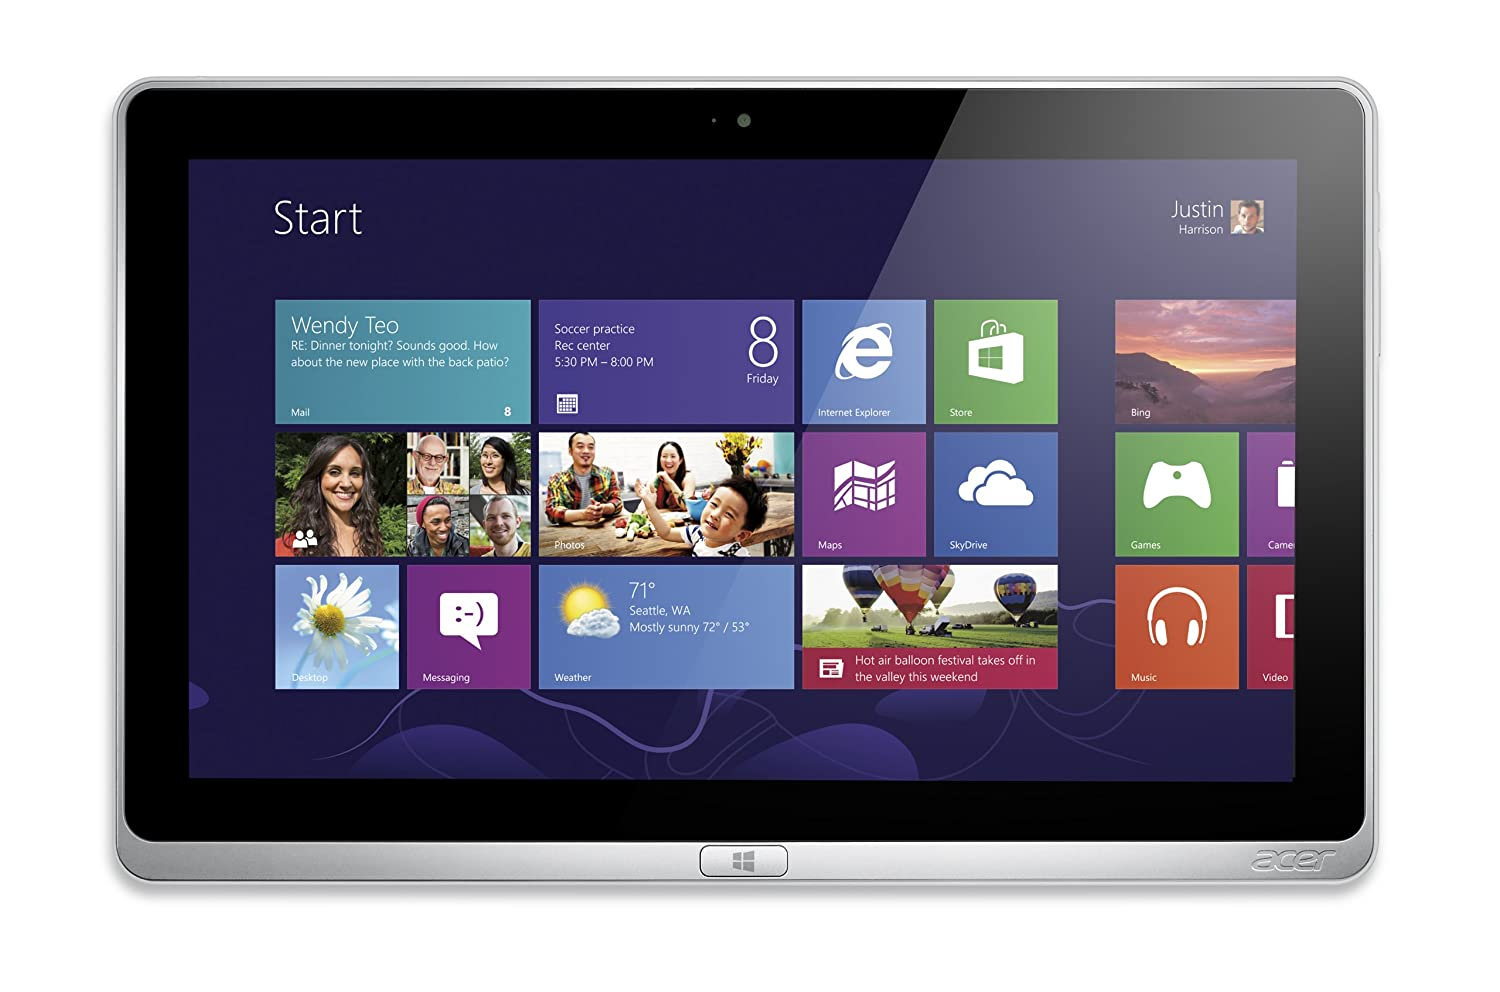 Acer-Aspire-P3-171-6820-11-6-Inch-Detachable-2-in-1-Touchscreen-Ultrabook-Silver-